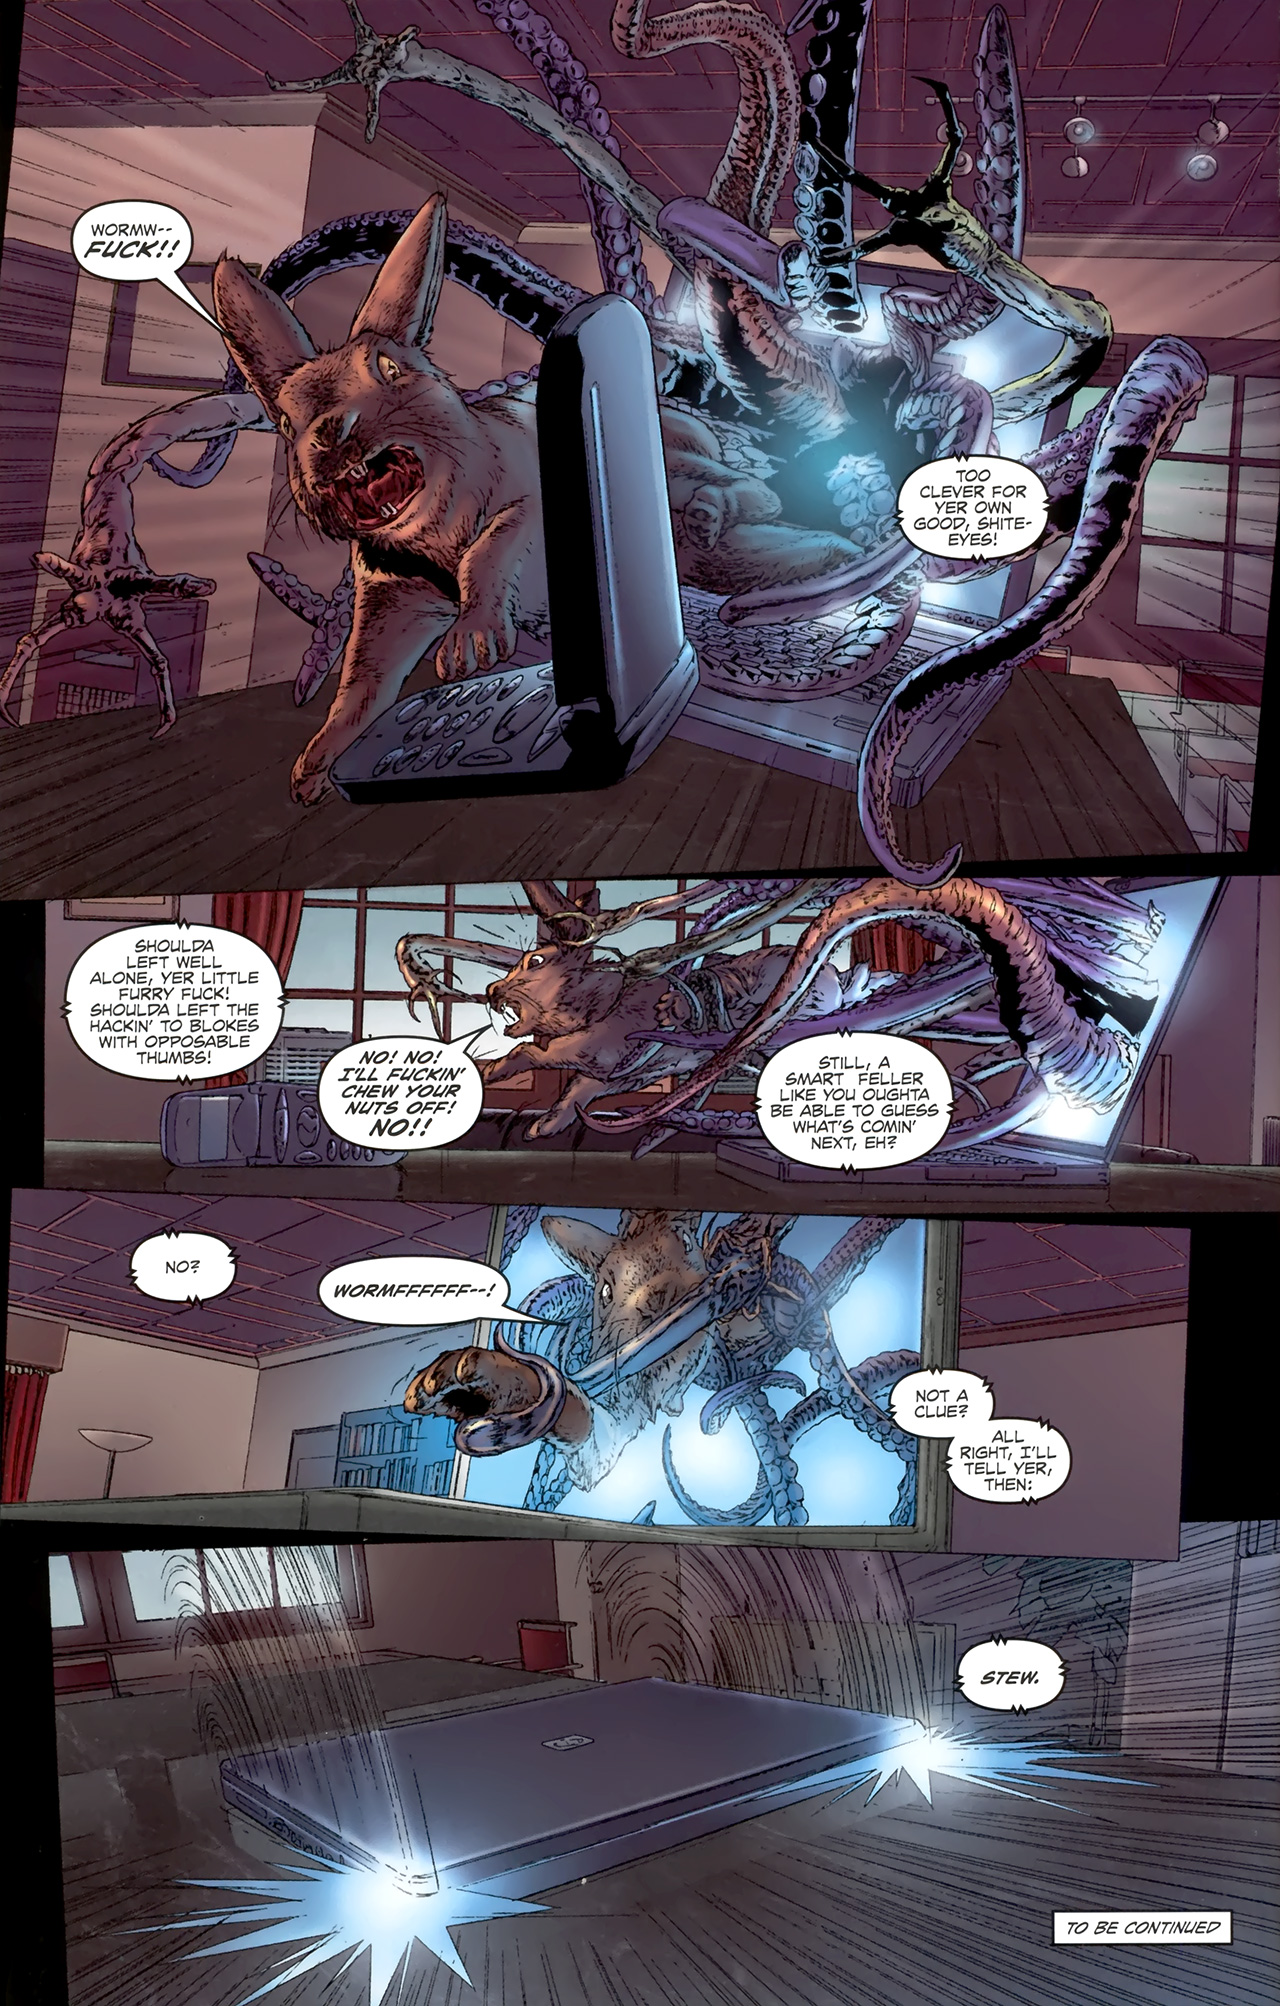 Read online Chronicles of Wormwood: The Last Battle comic -  Issue #4 - 25